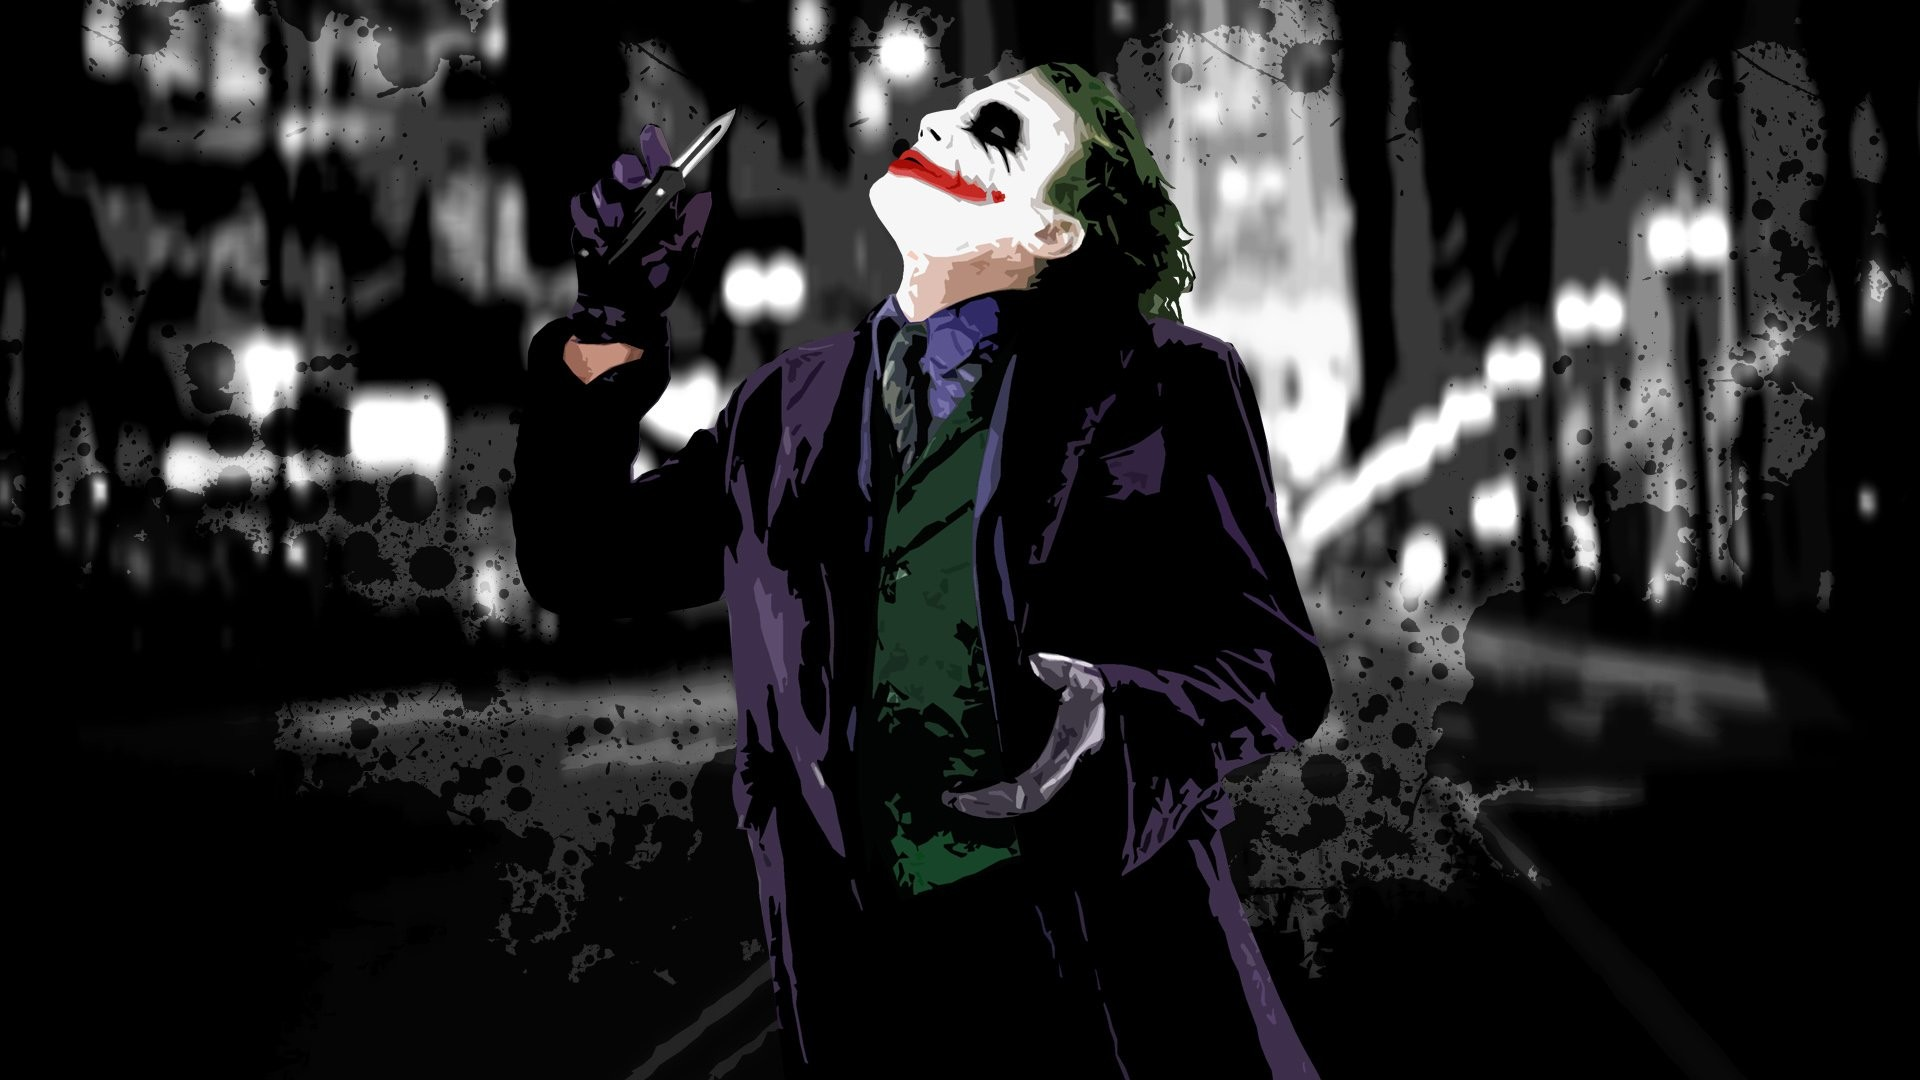 1920x1080 The Dark Knight Joker Desktop Wallpapers HD | Movie HD Wallpapers